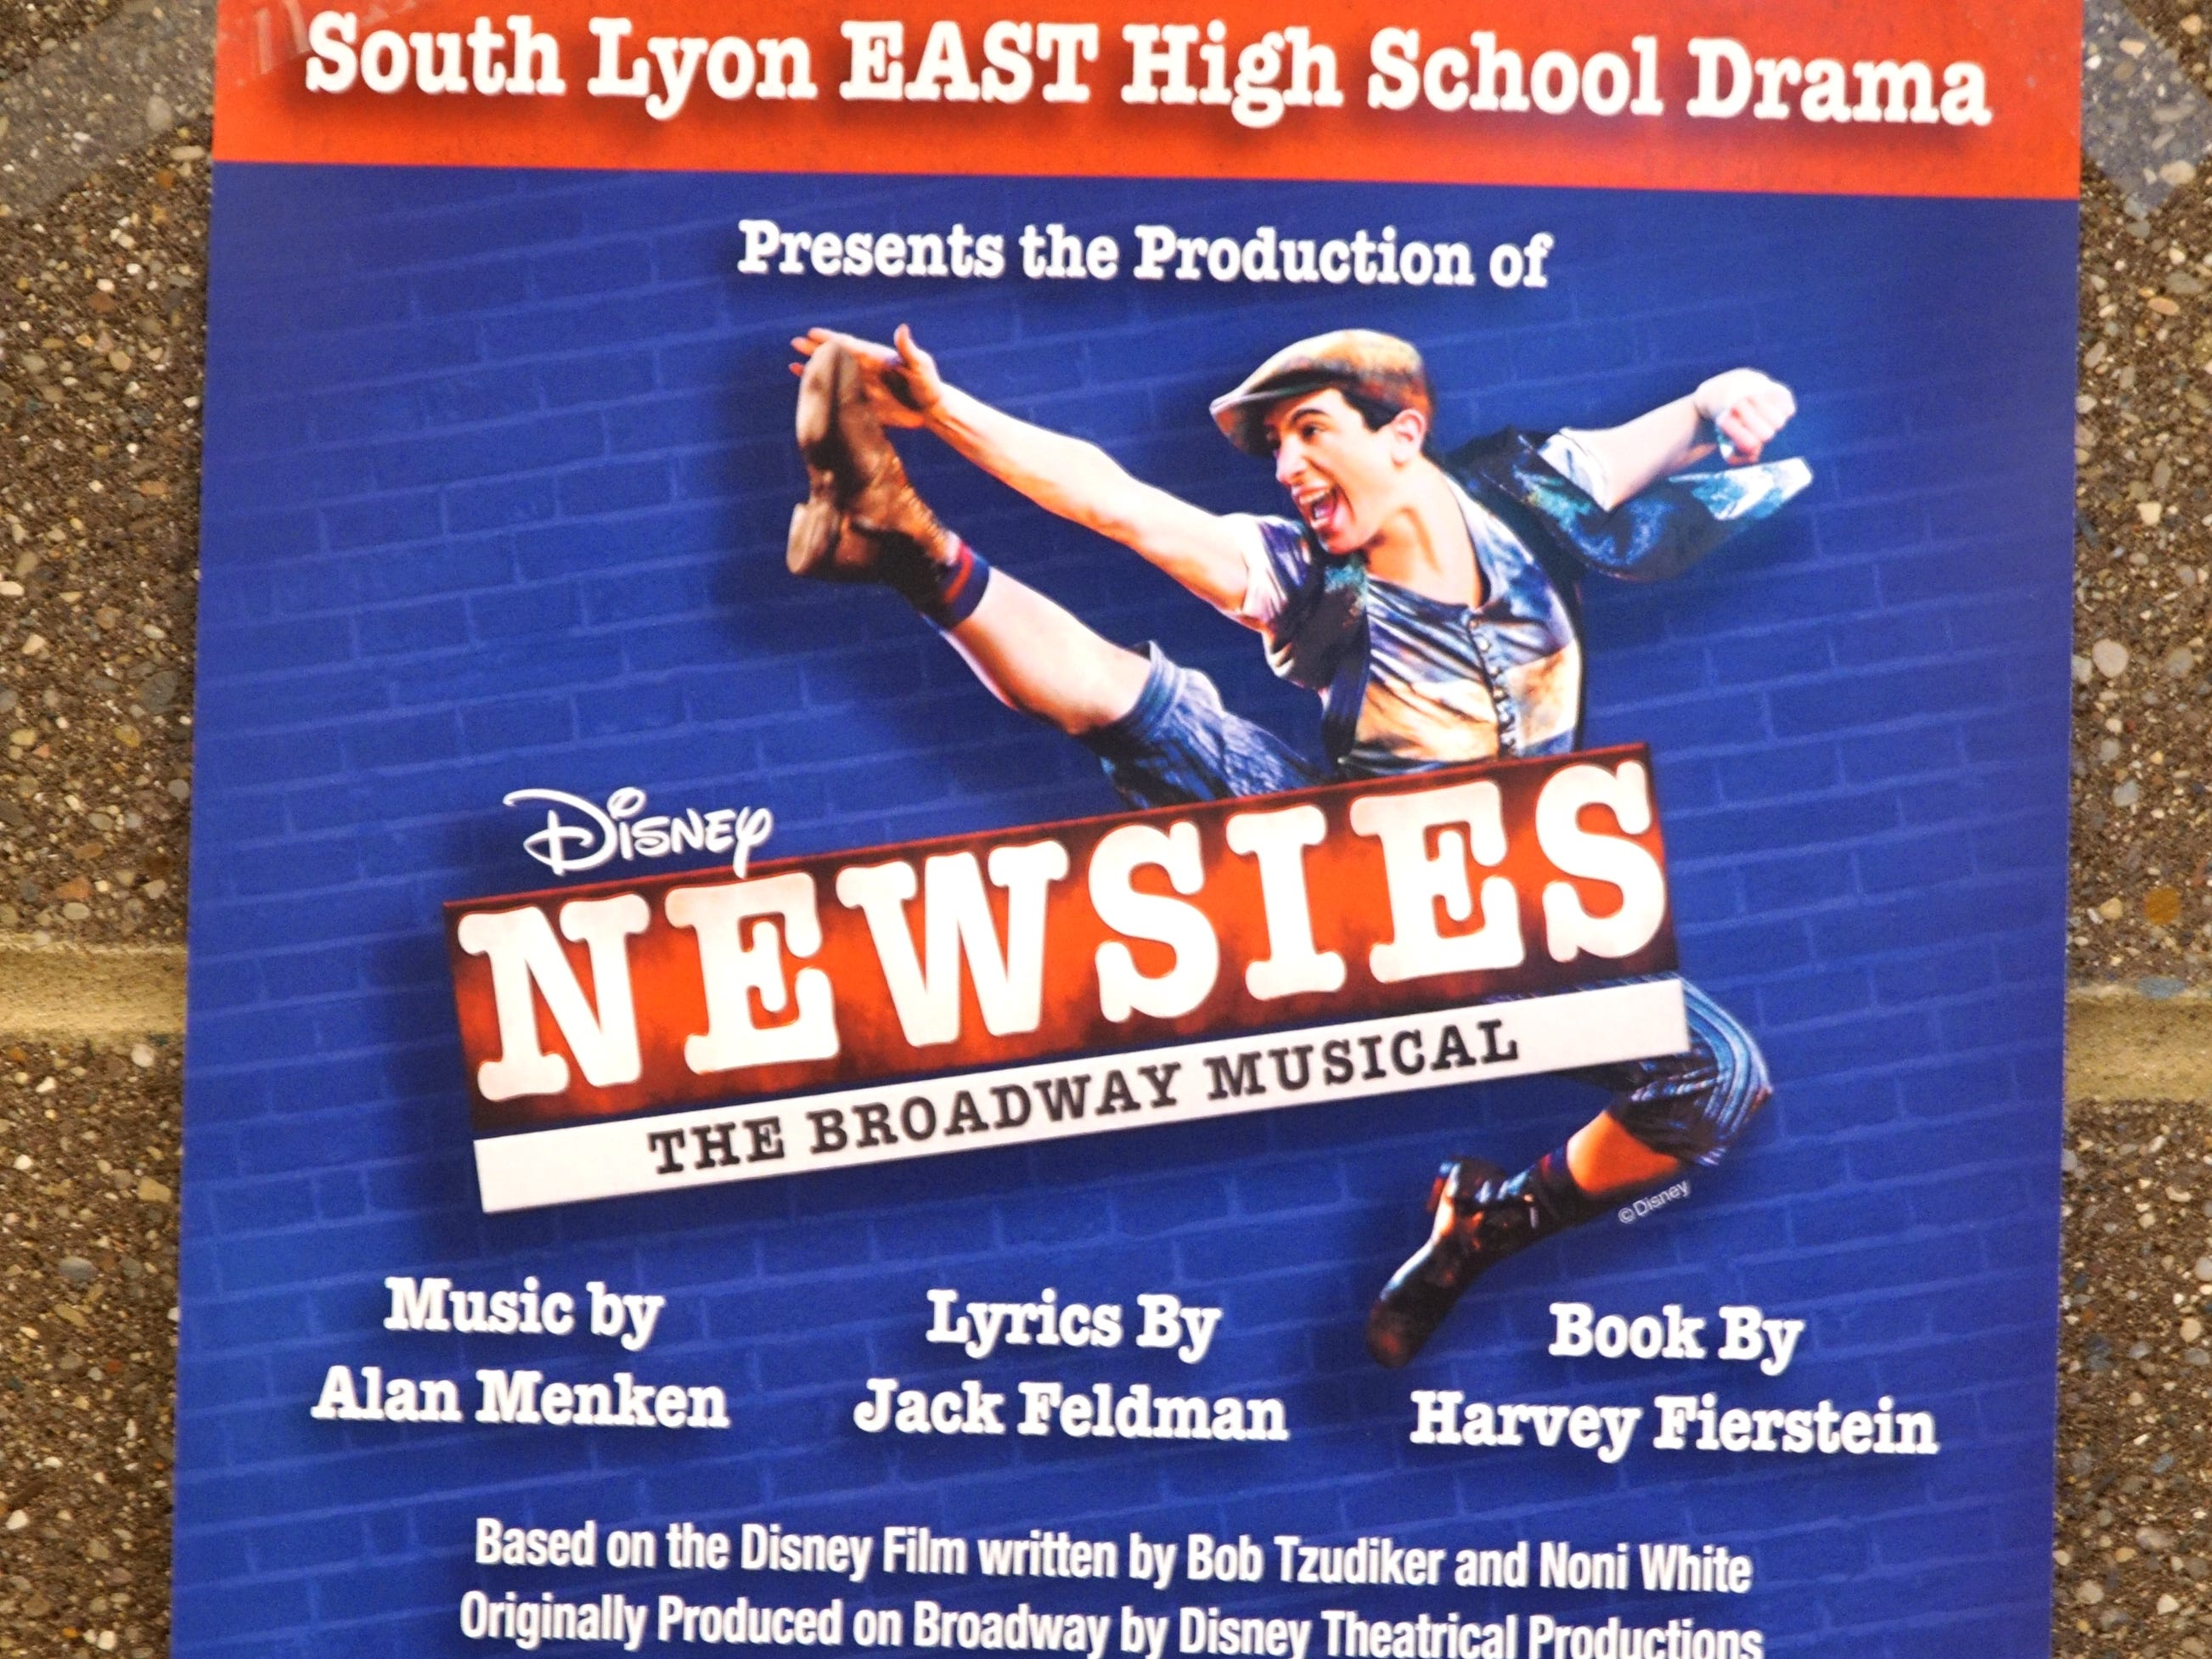 South Lyon High East's production of Newsies will take place on April 25-28 at the Ten Mile Road school.